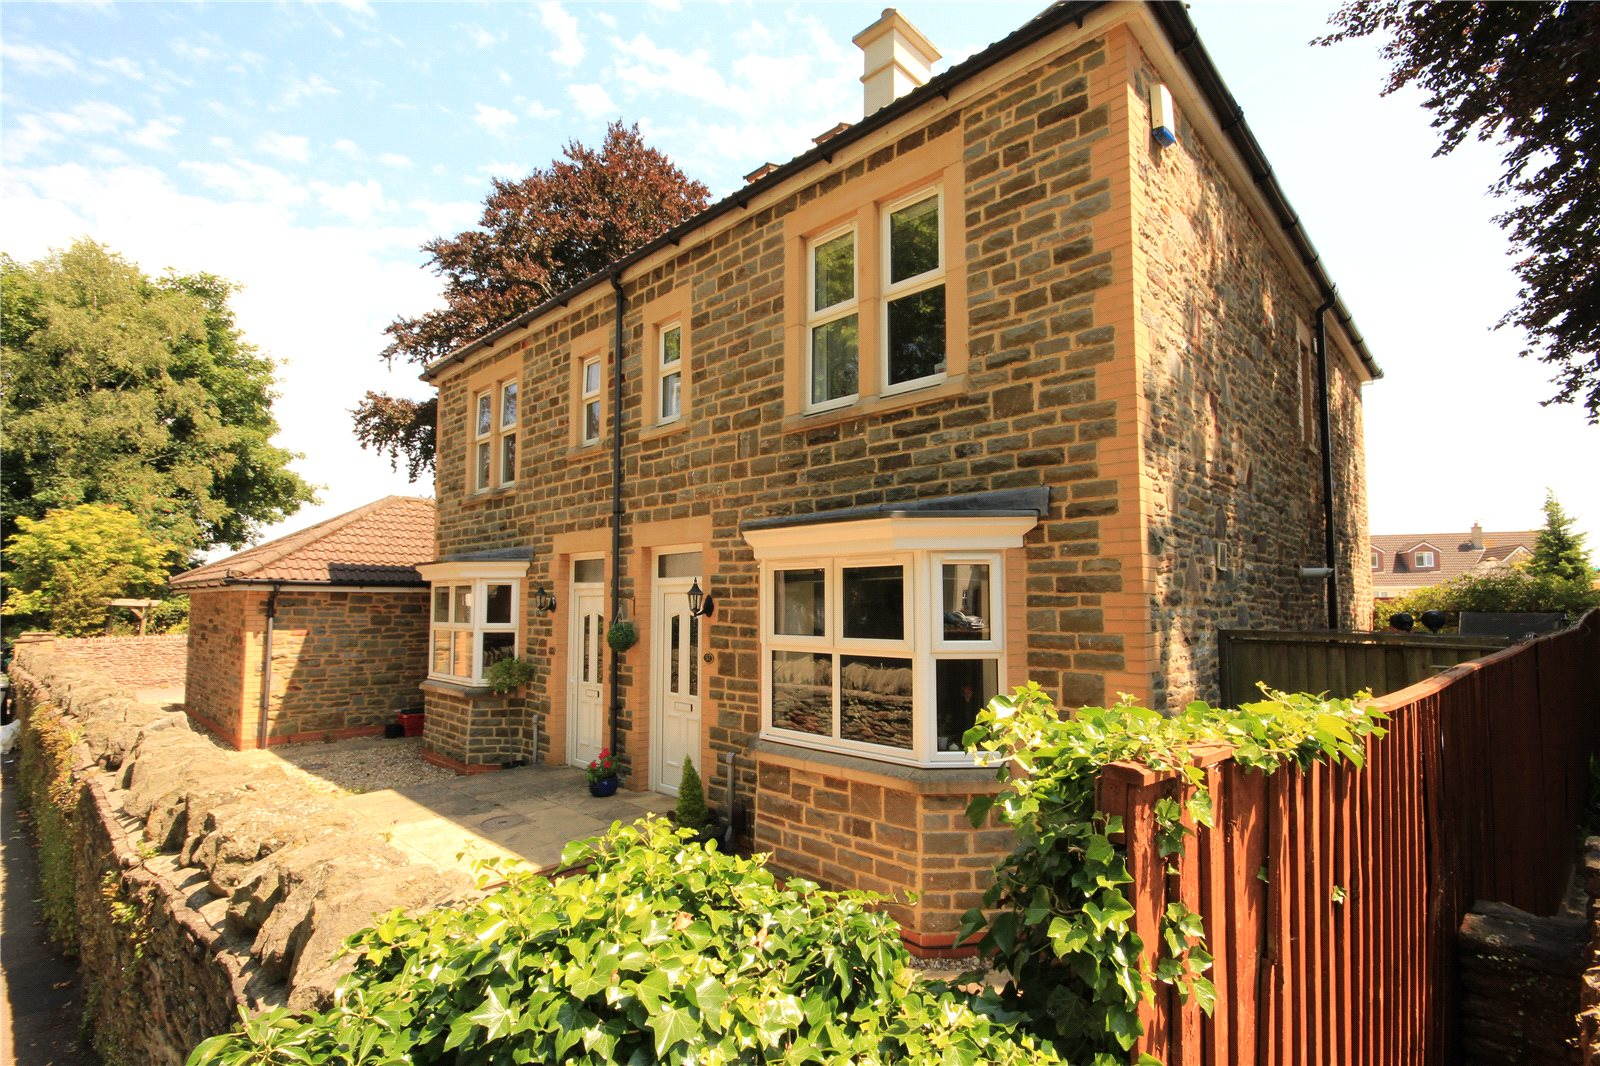 4 Bedrooms Semi Detached House for sale in High Street Winterbourne Bristol BS36